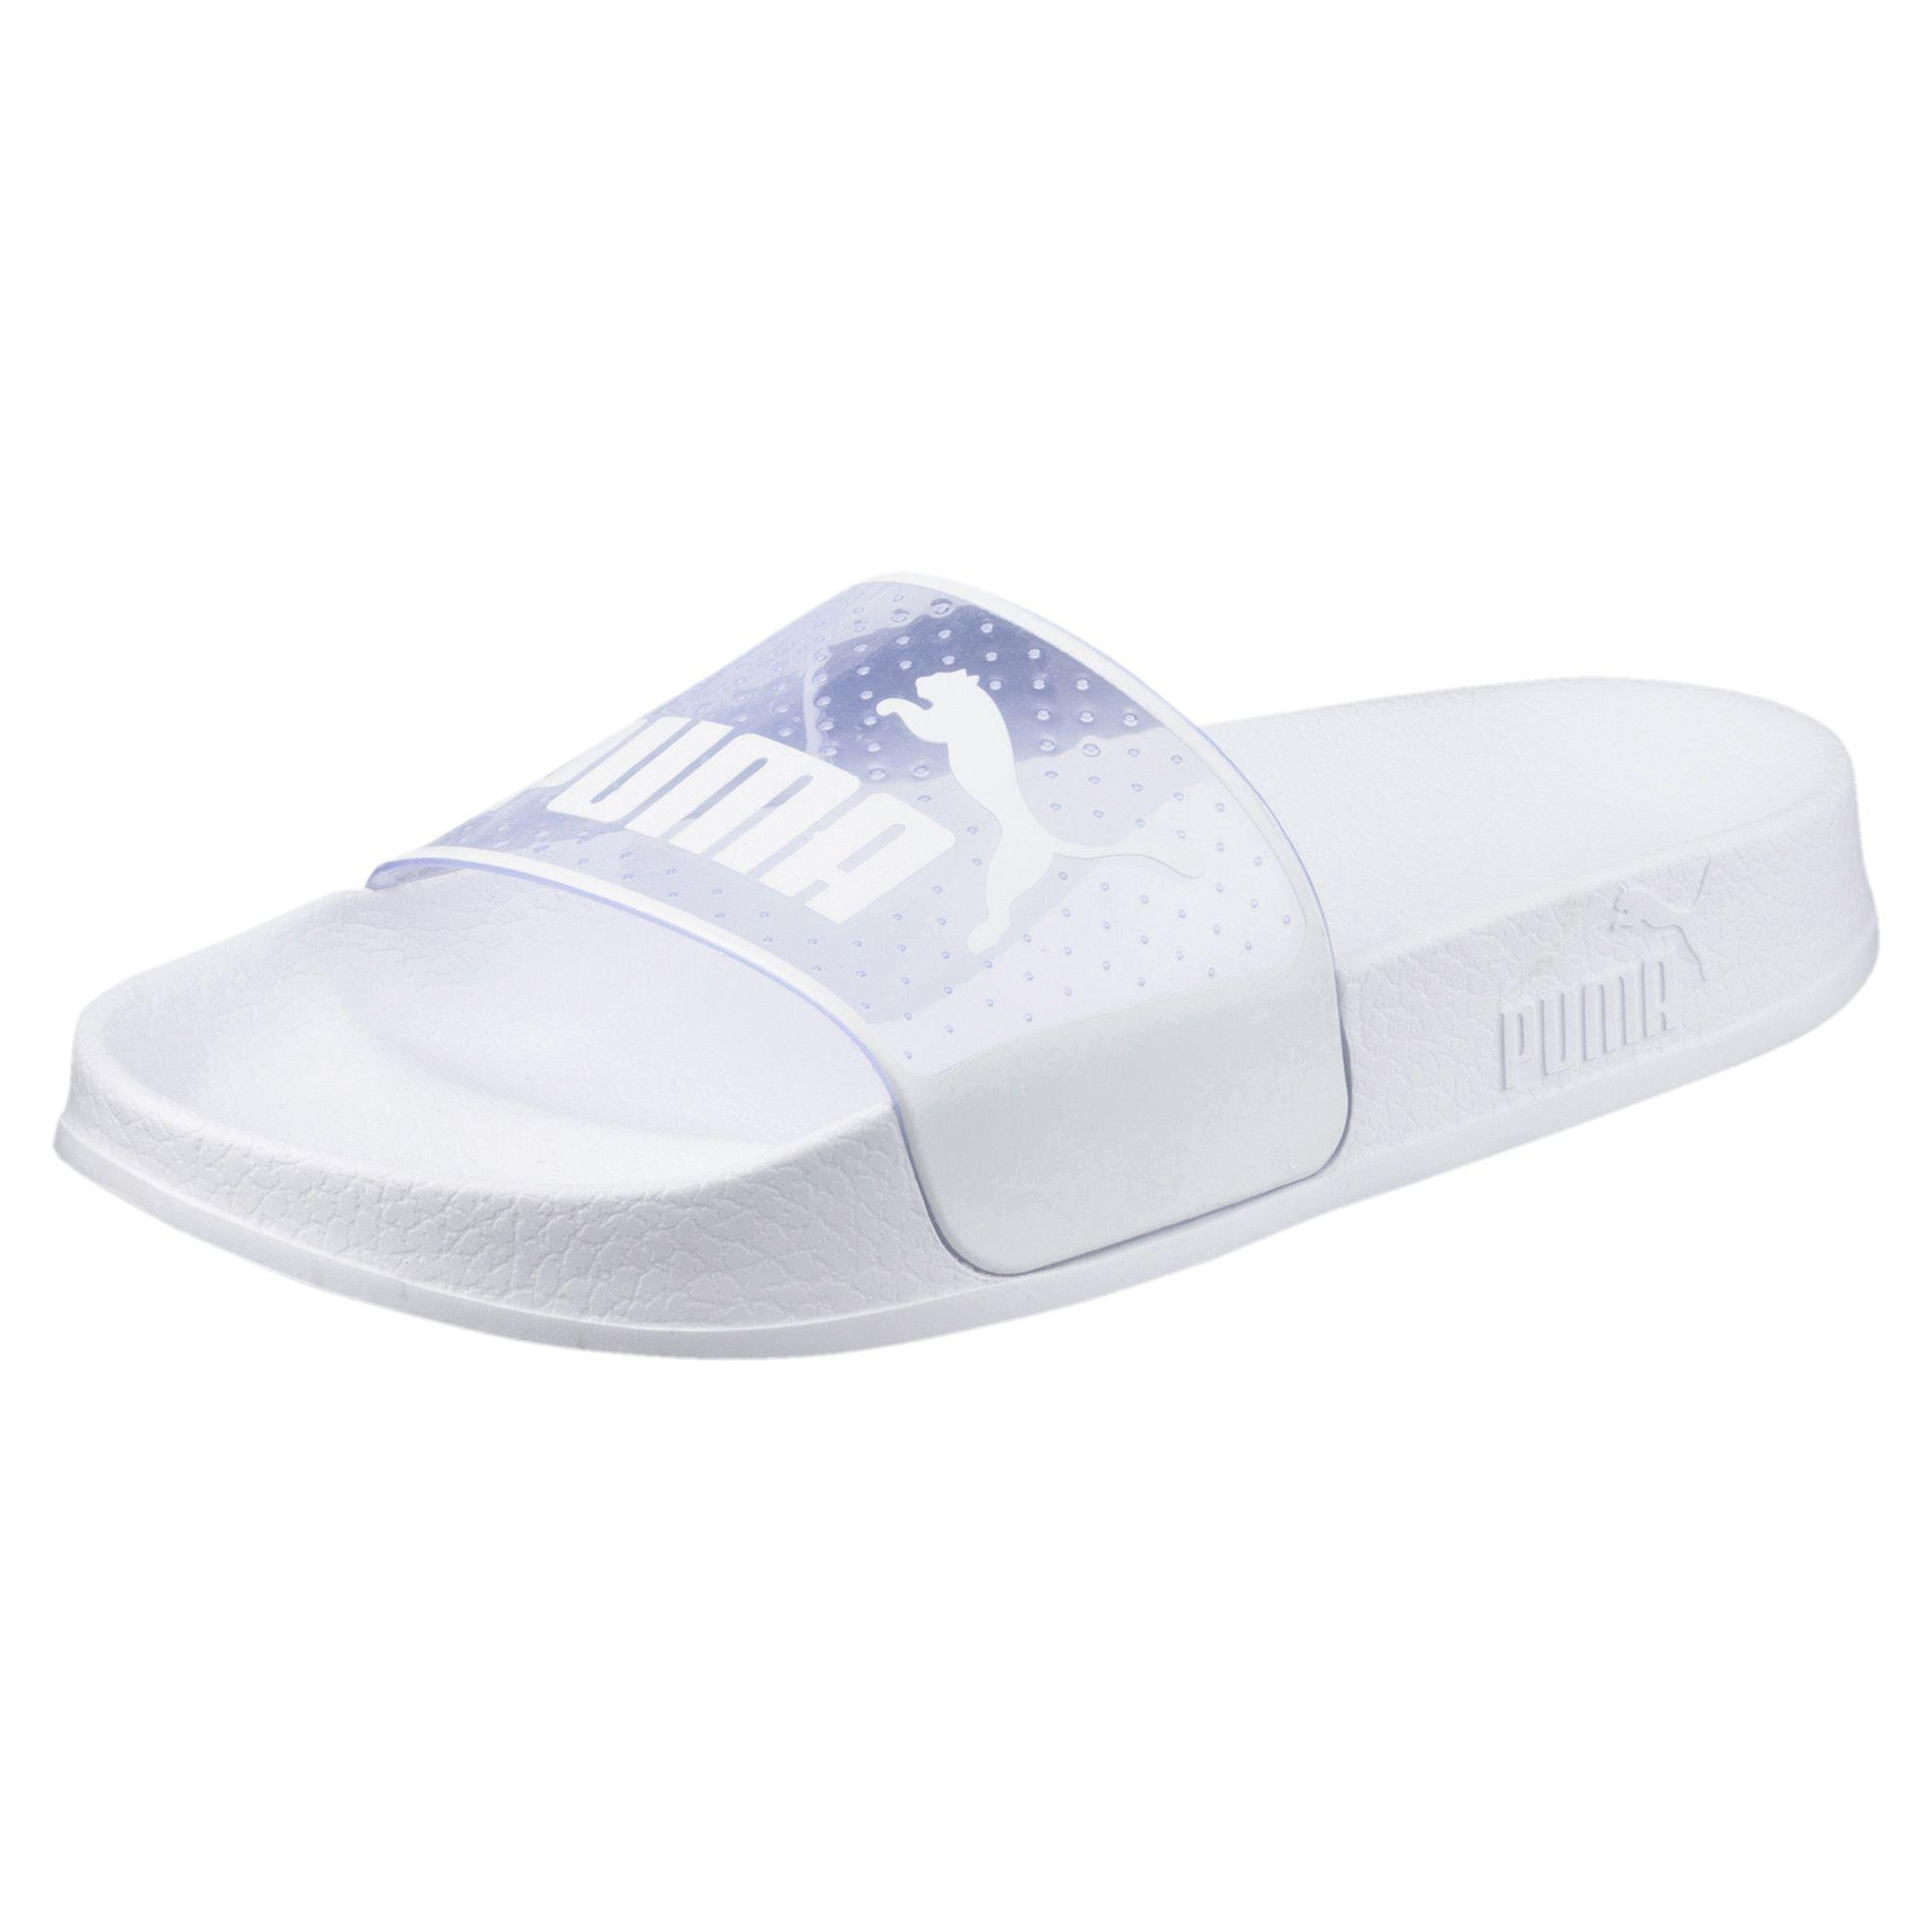 Lyst - PUMA Leadcat Jelly Women s Slide Sandals in White 149134188